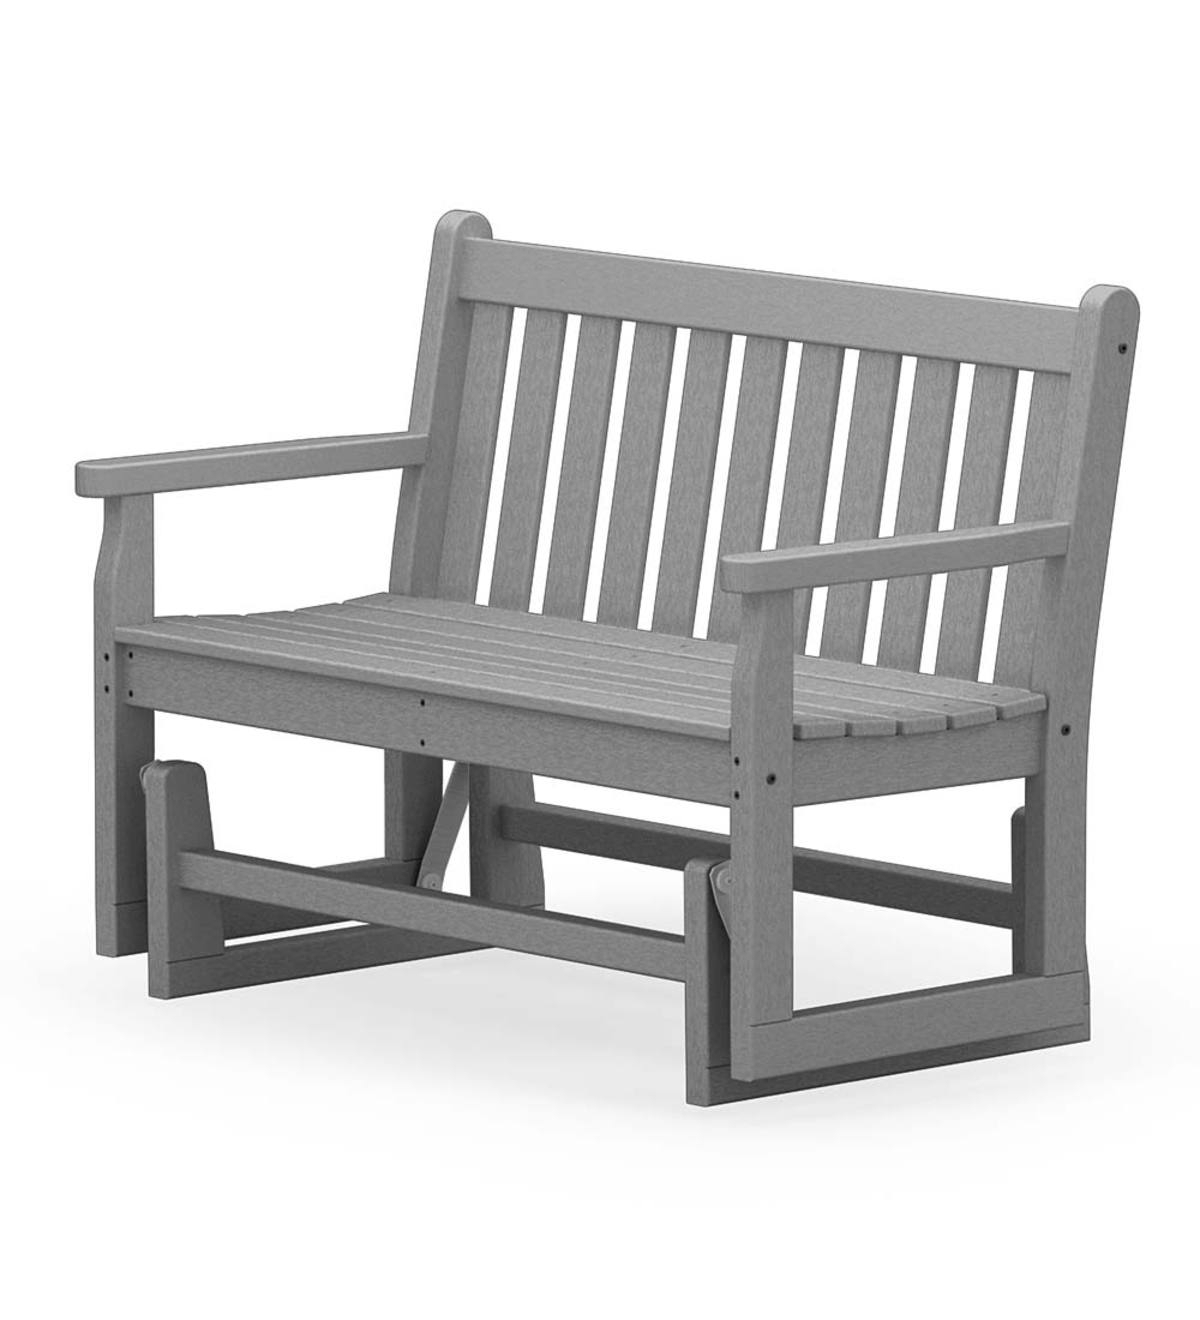 Polywood Outdoor Glider Bench – Gray | Plowhearth Within Indoor/outdoor Double Glider Benches (View 13 of 25)